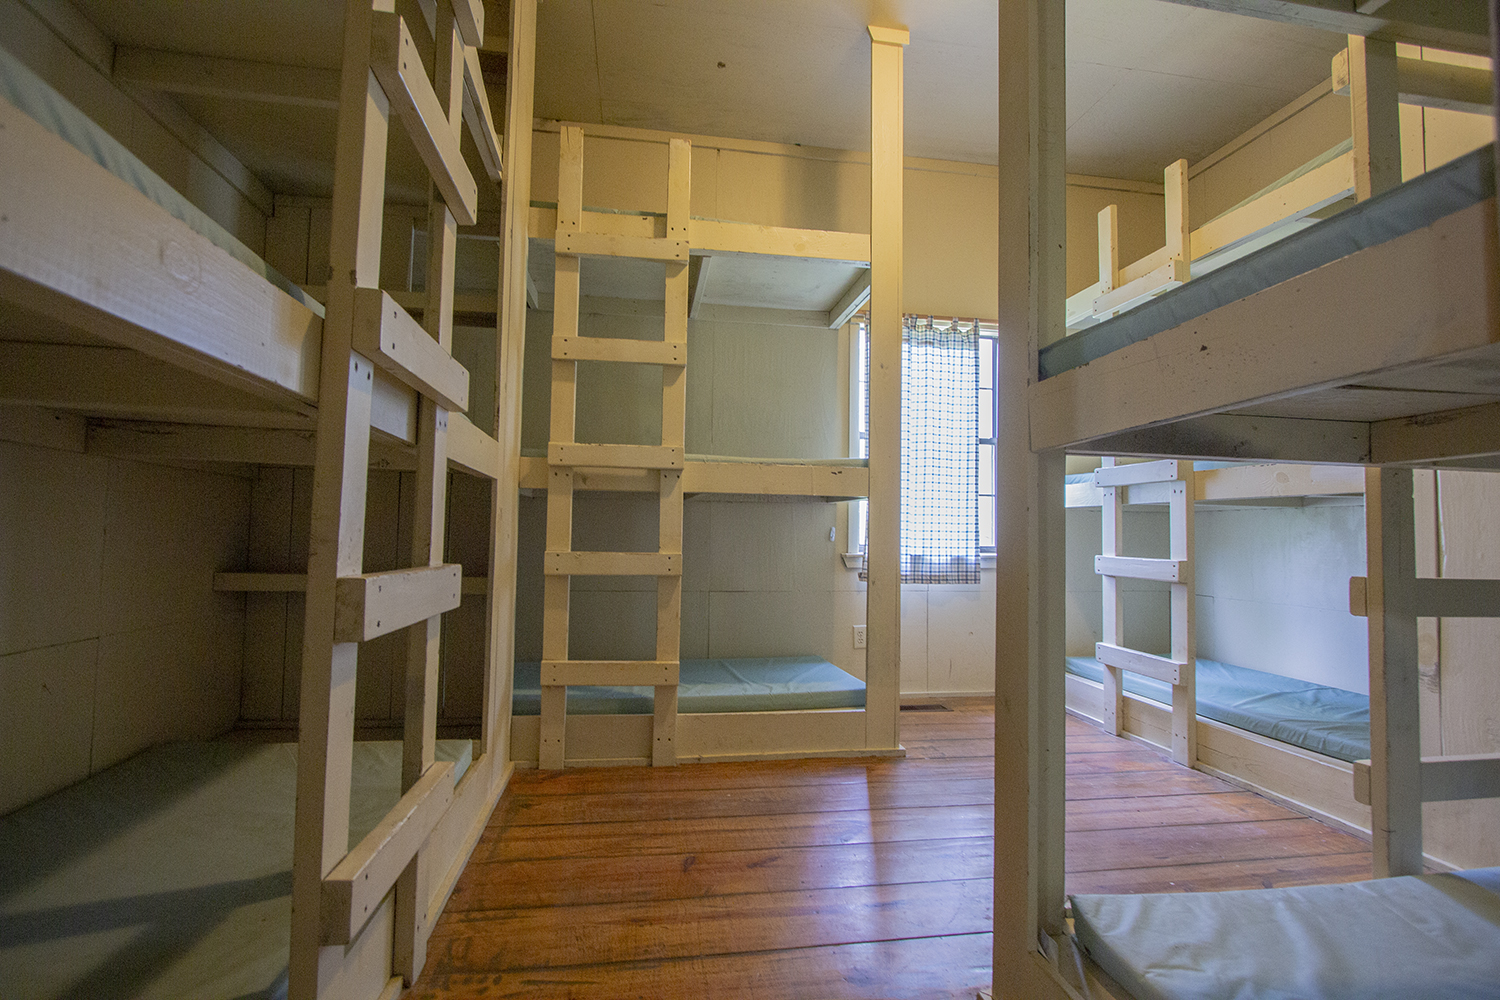 Bunks 1-3 Bedroom.jpg